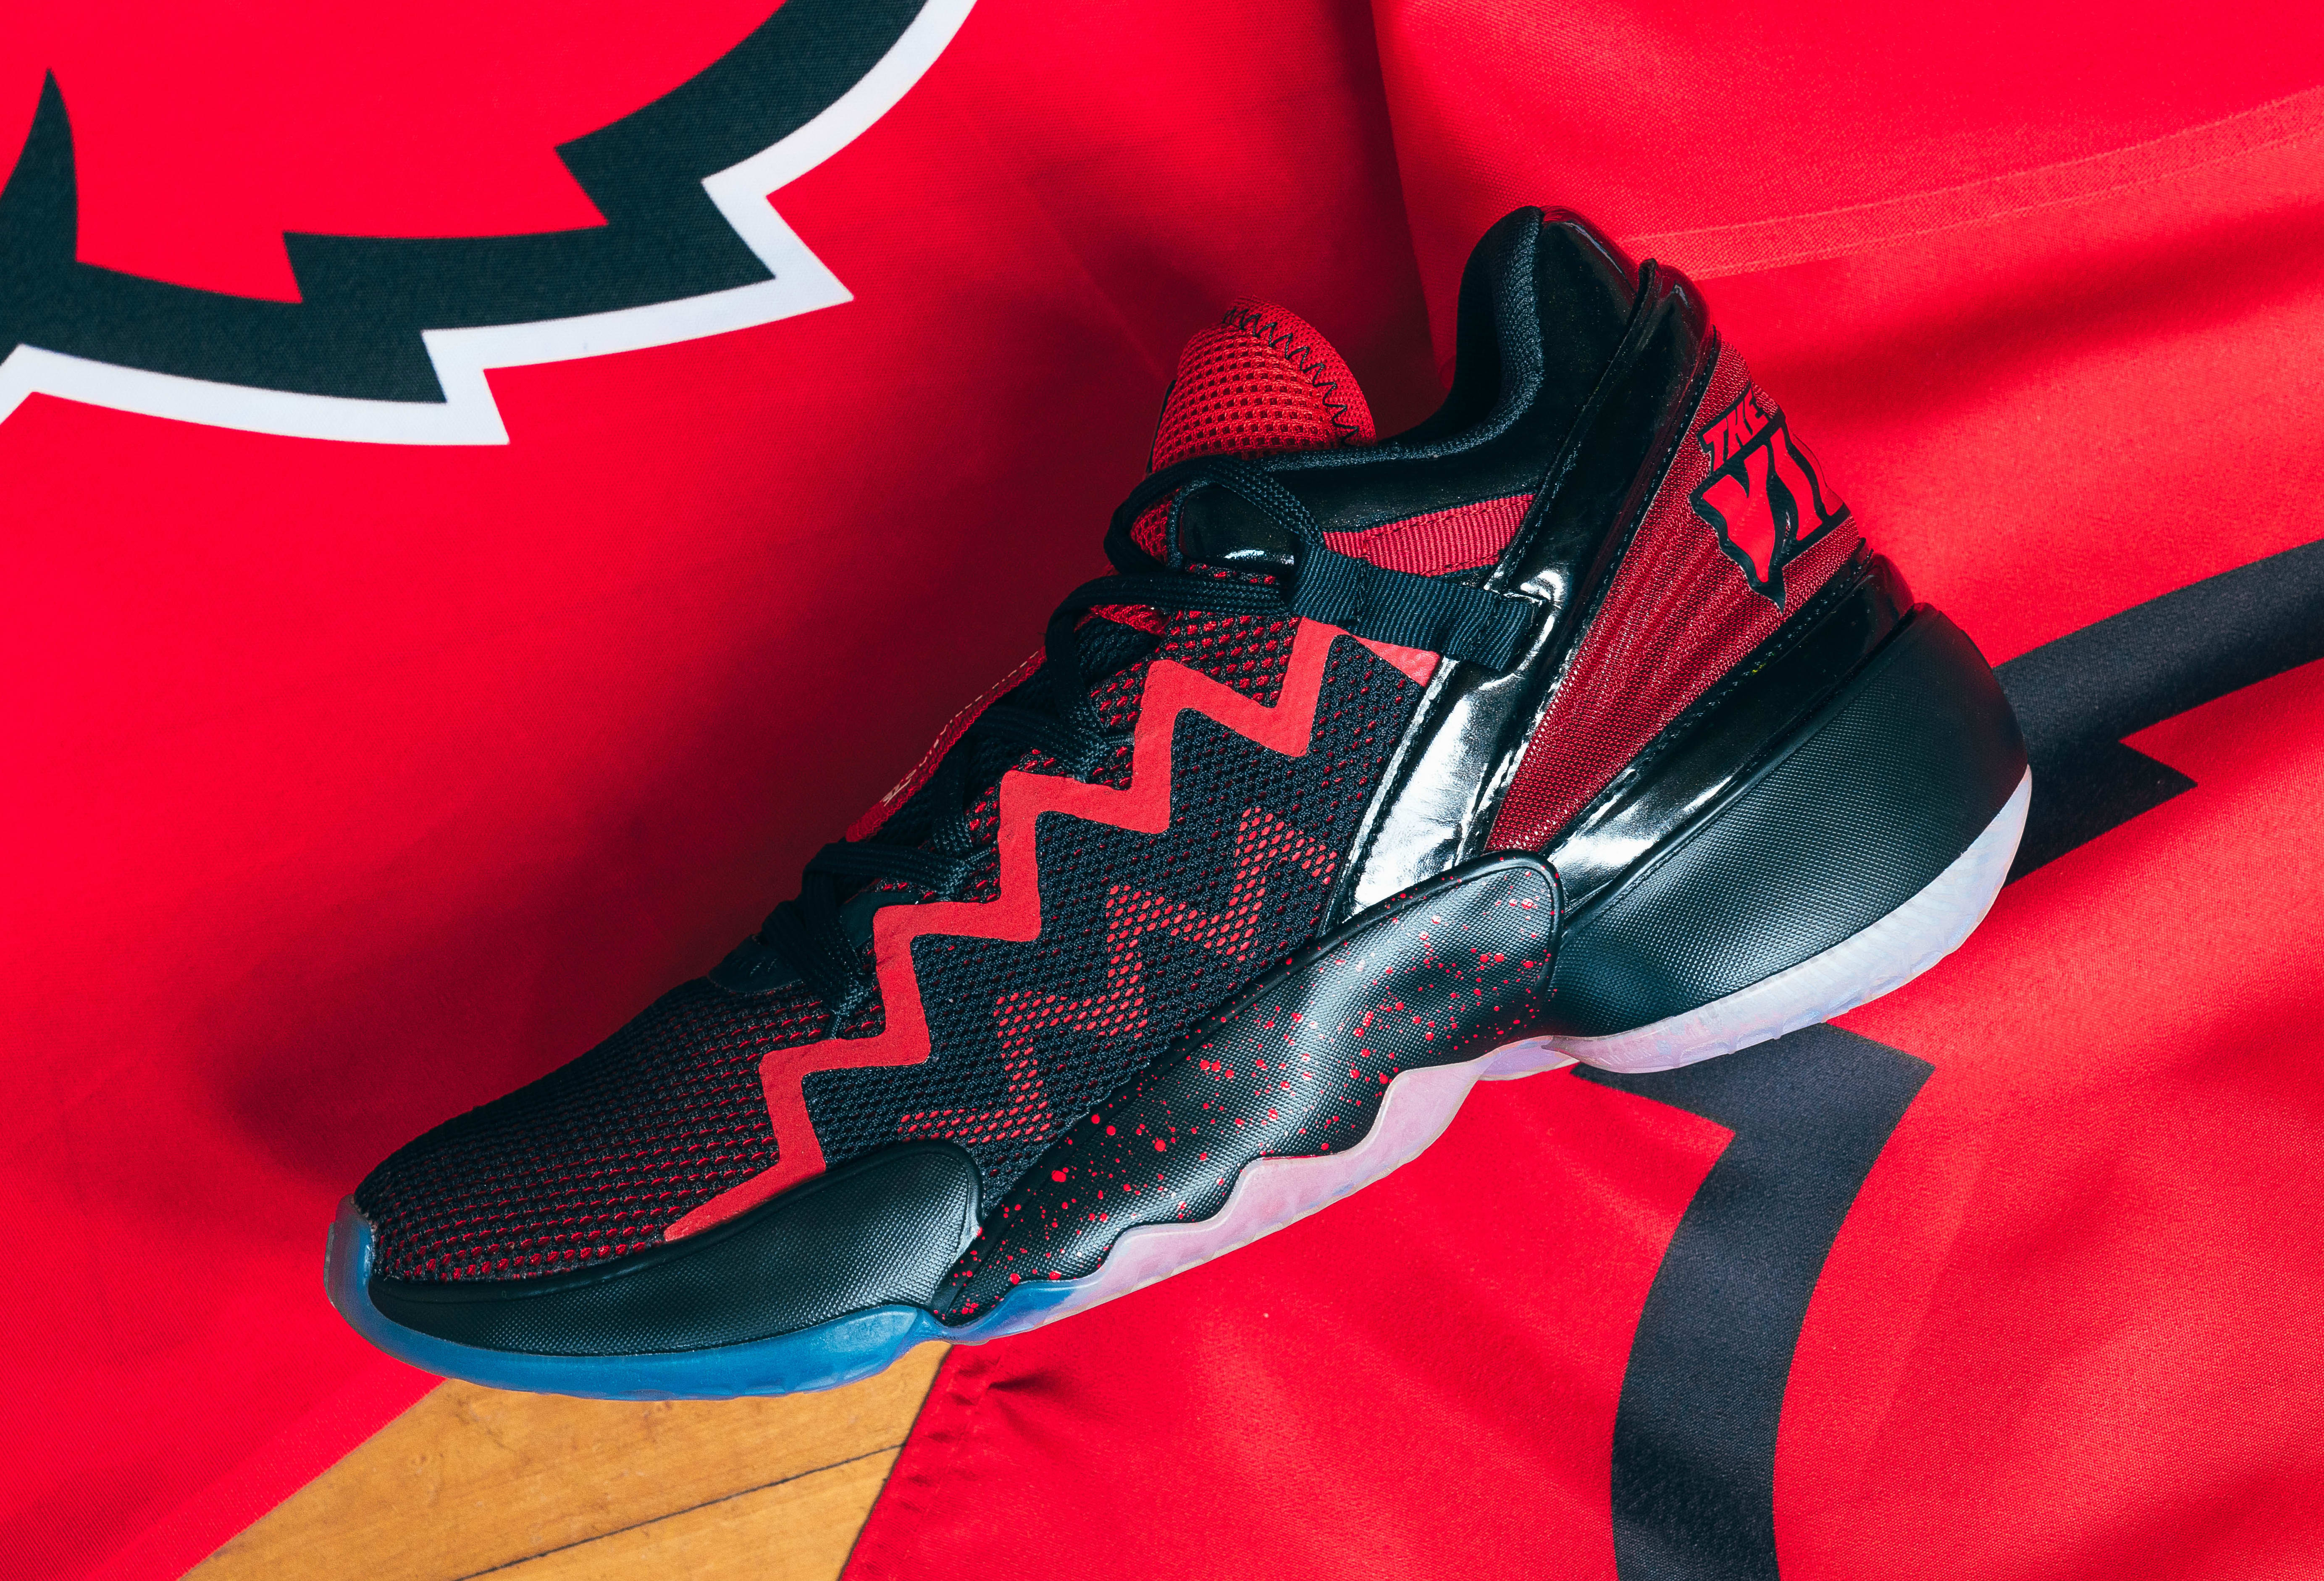 Louisville x Adidas D.O.N. Issue #2 'A Shoe For Change' Side